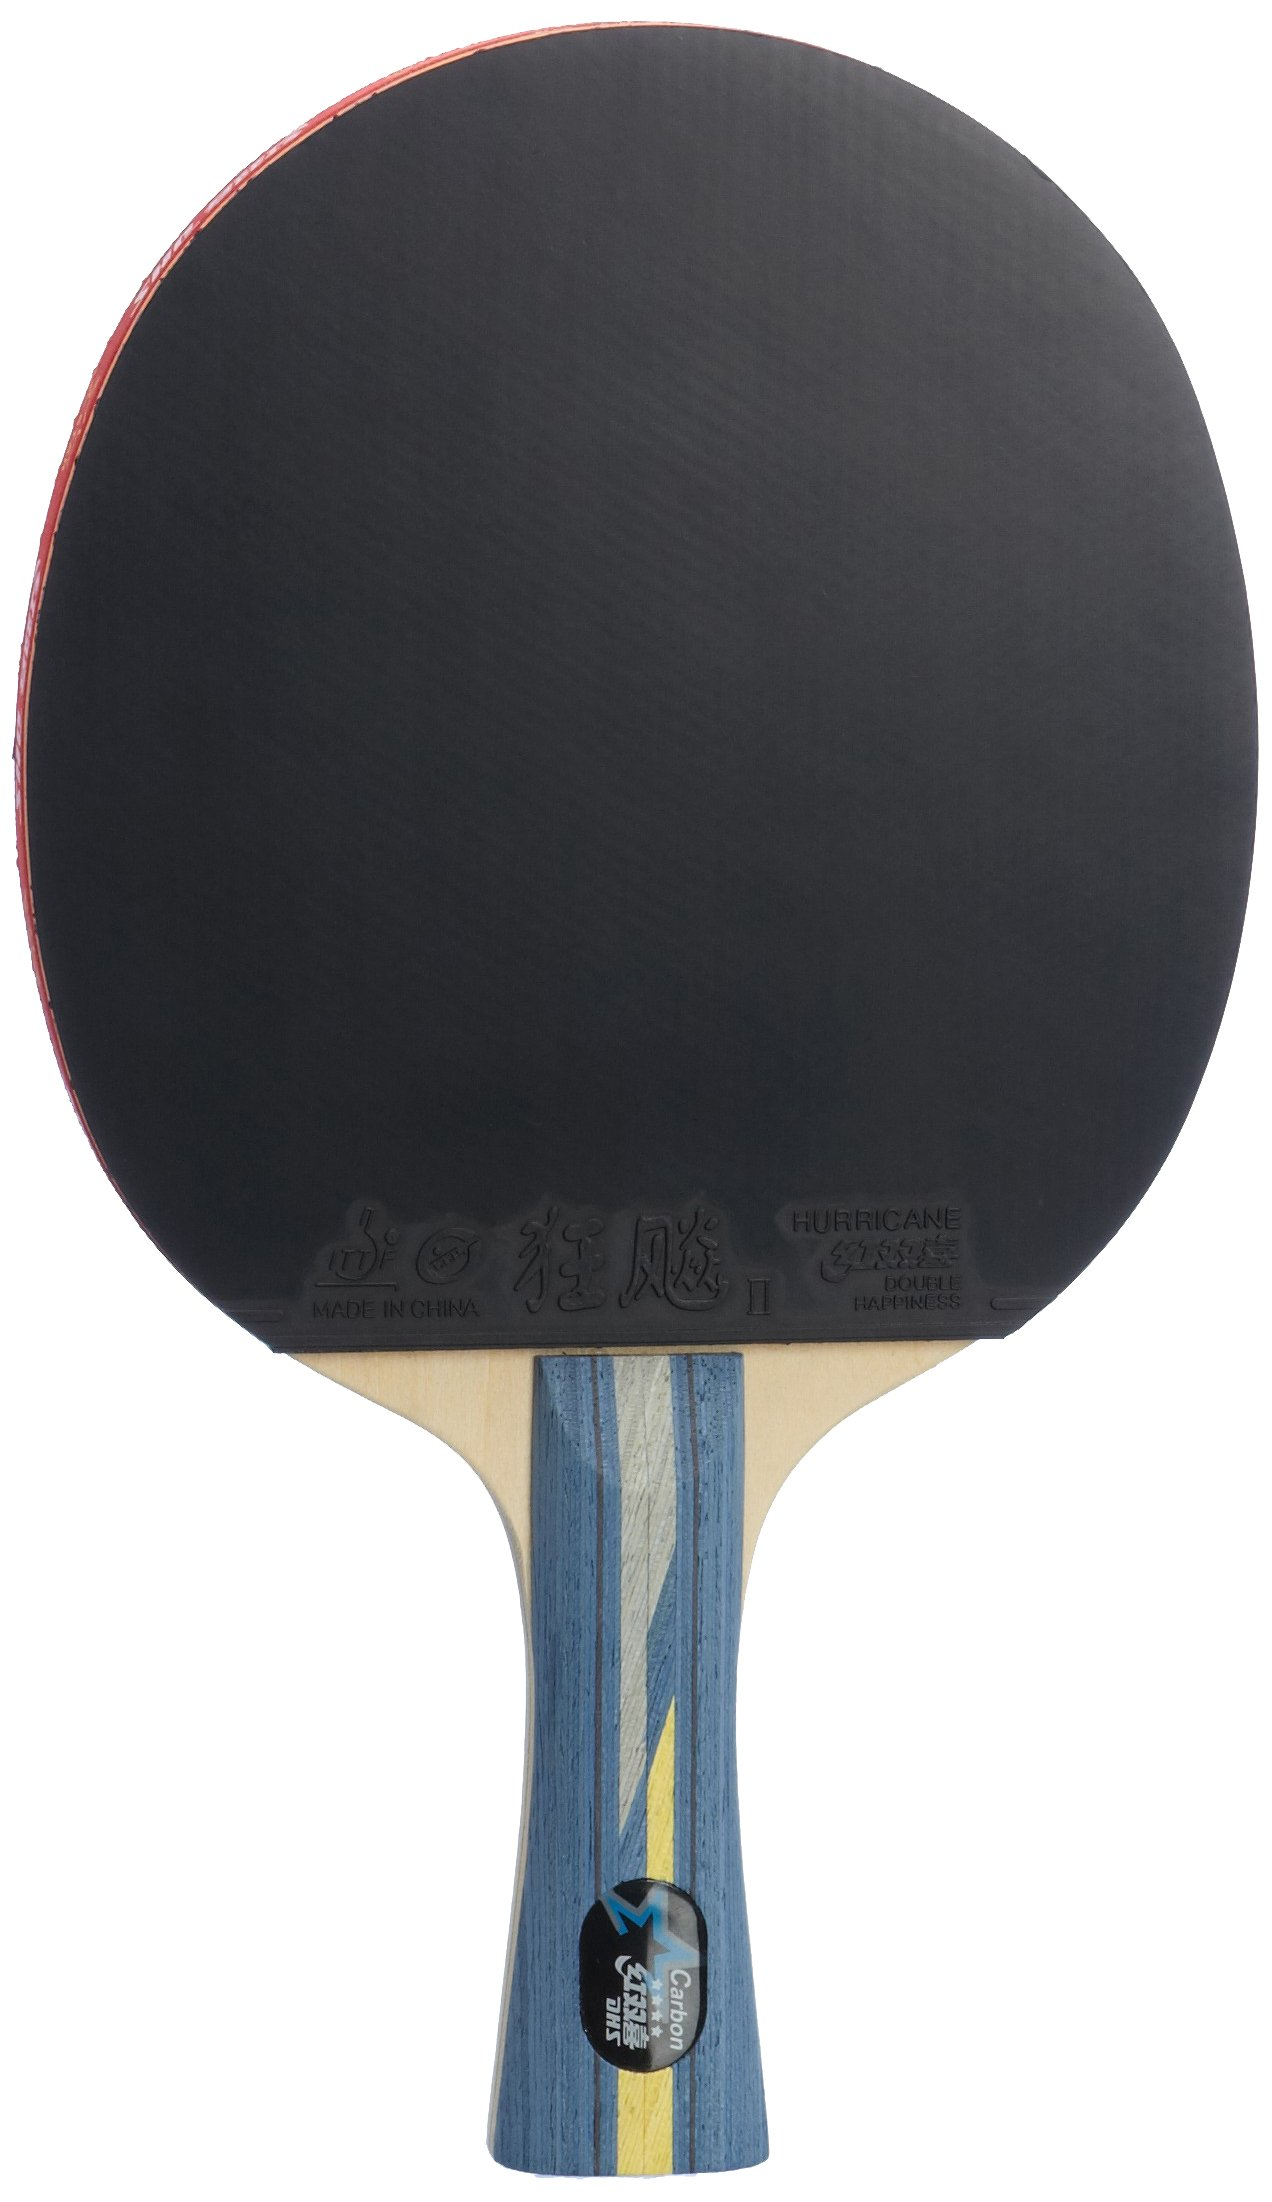 DHS Professional Quick-attack X Series Carbon Table Tennis Racket-shakehand by DHS